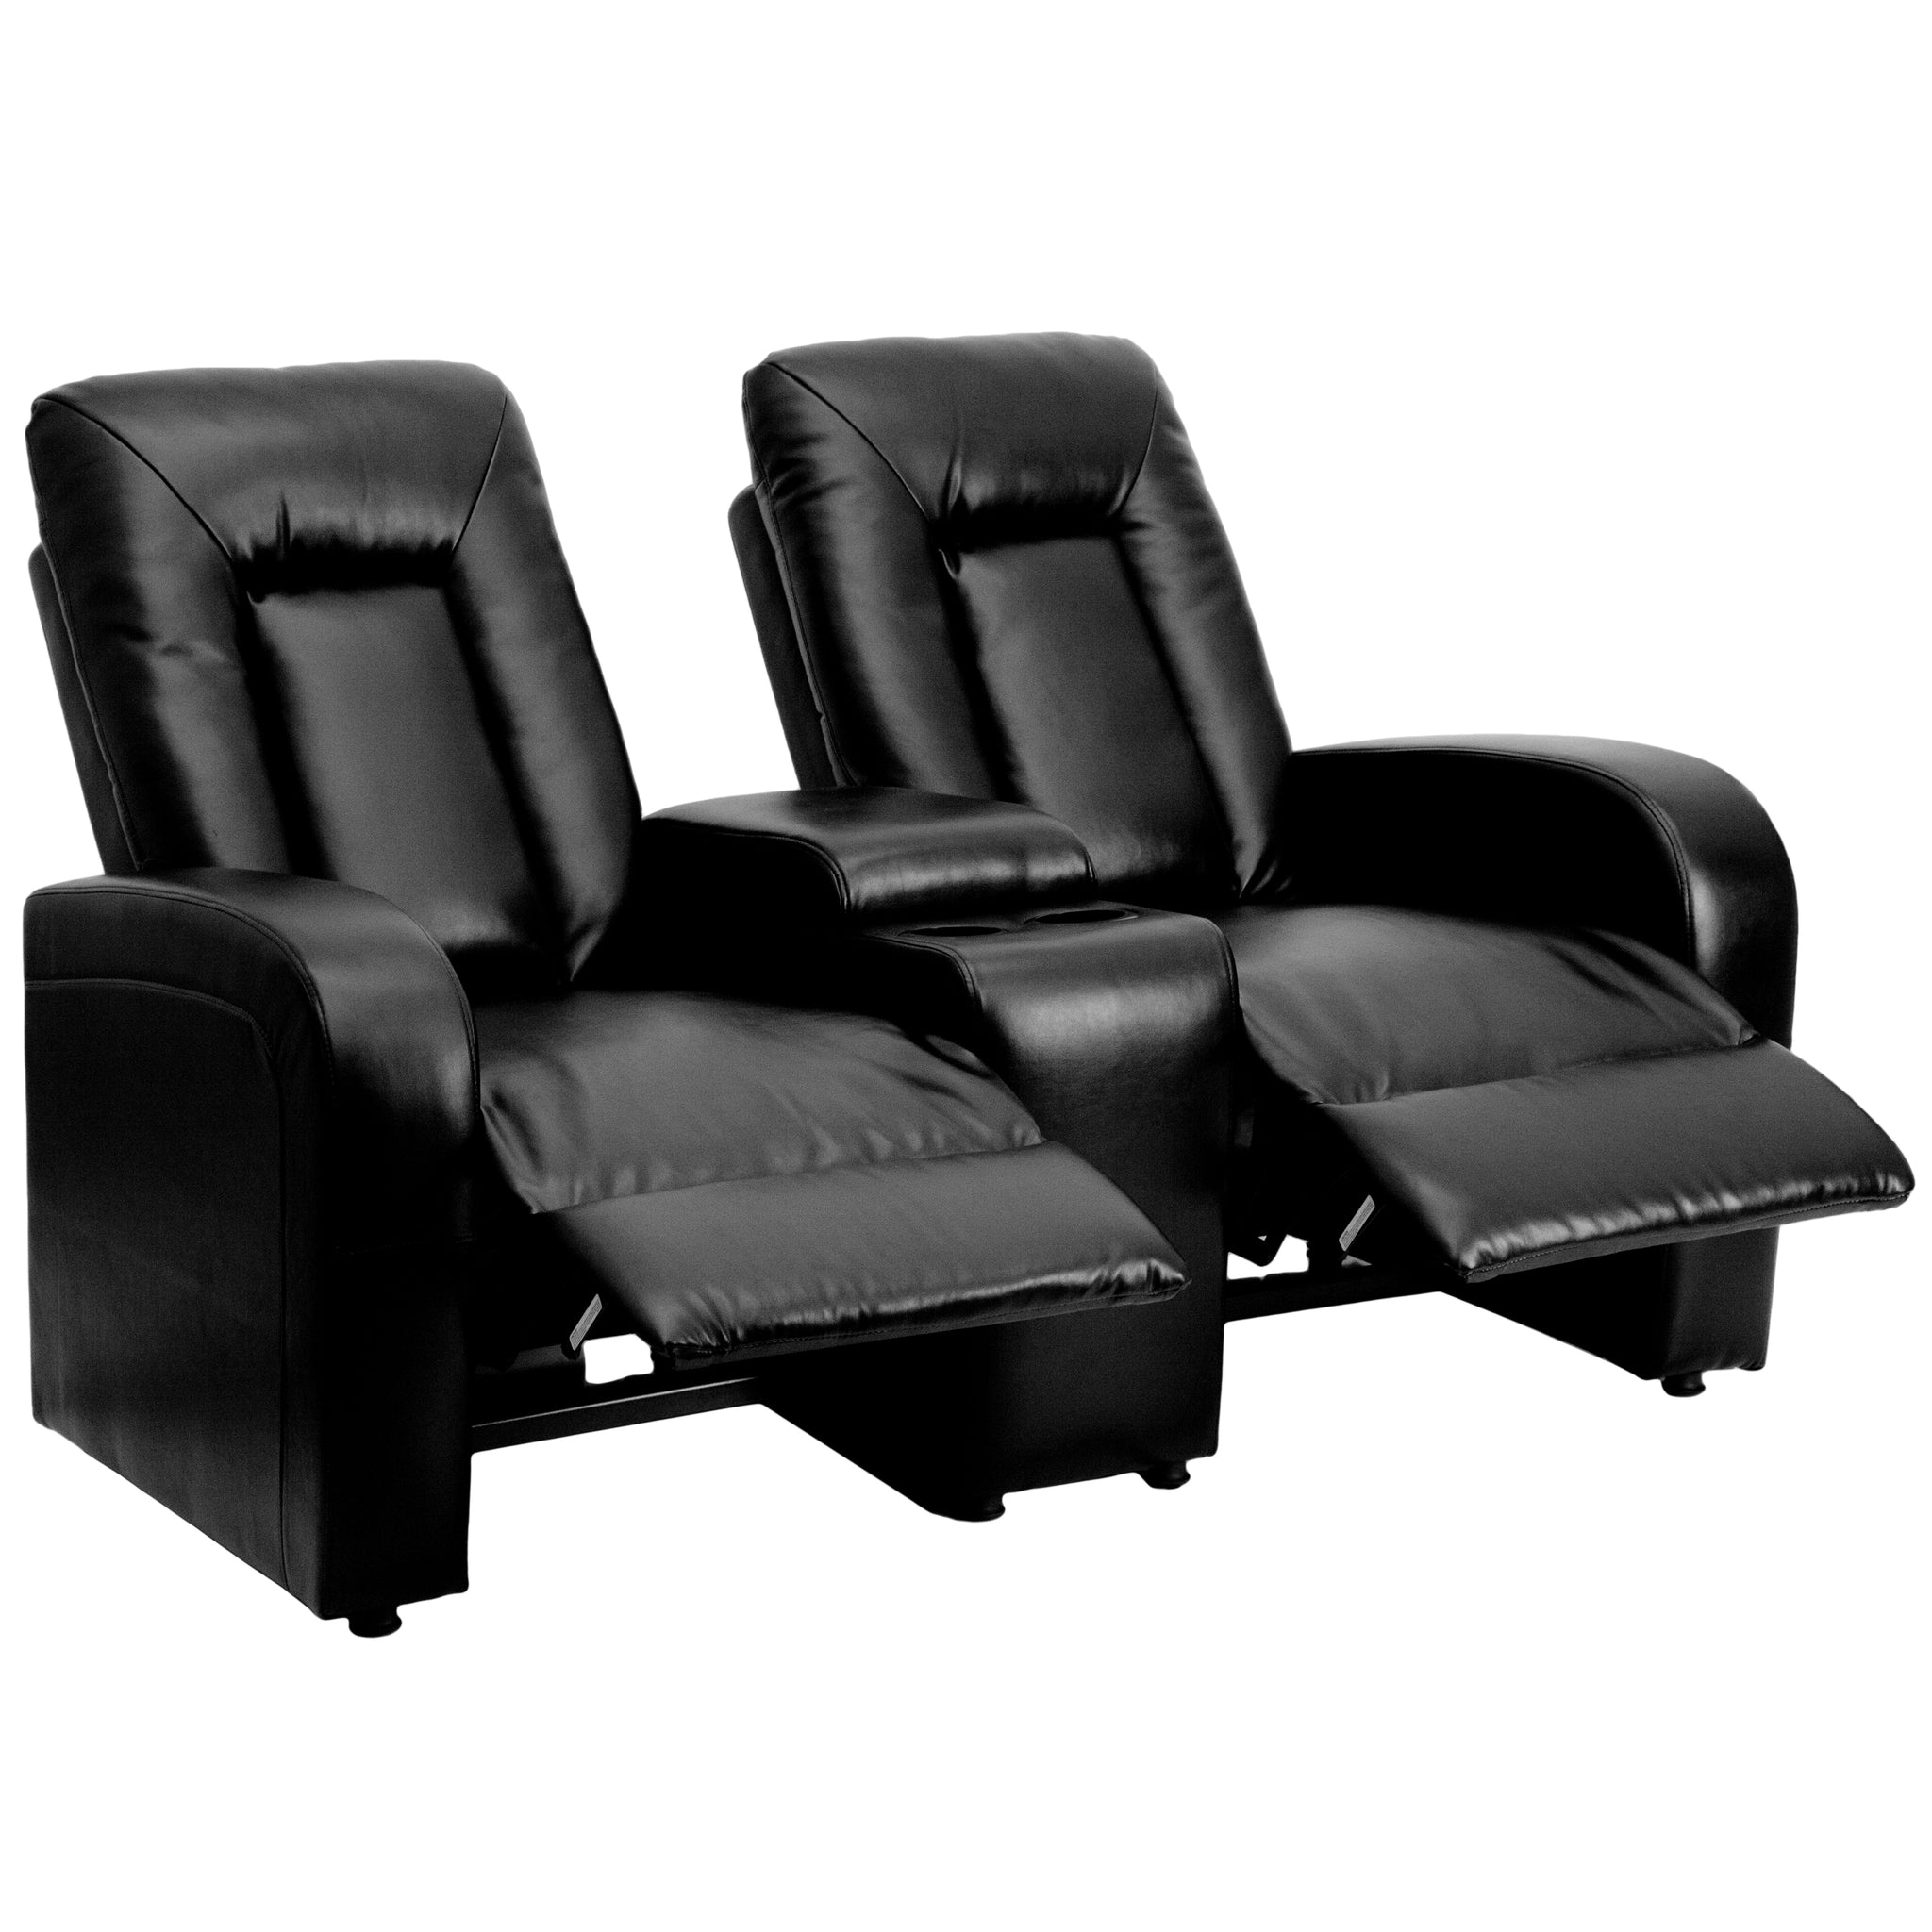 Eclipse Series 2-Seat Reclining Leather Theater Seating Unit with Cup Holders: Black